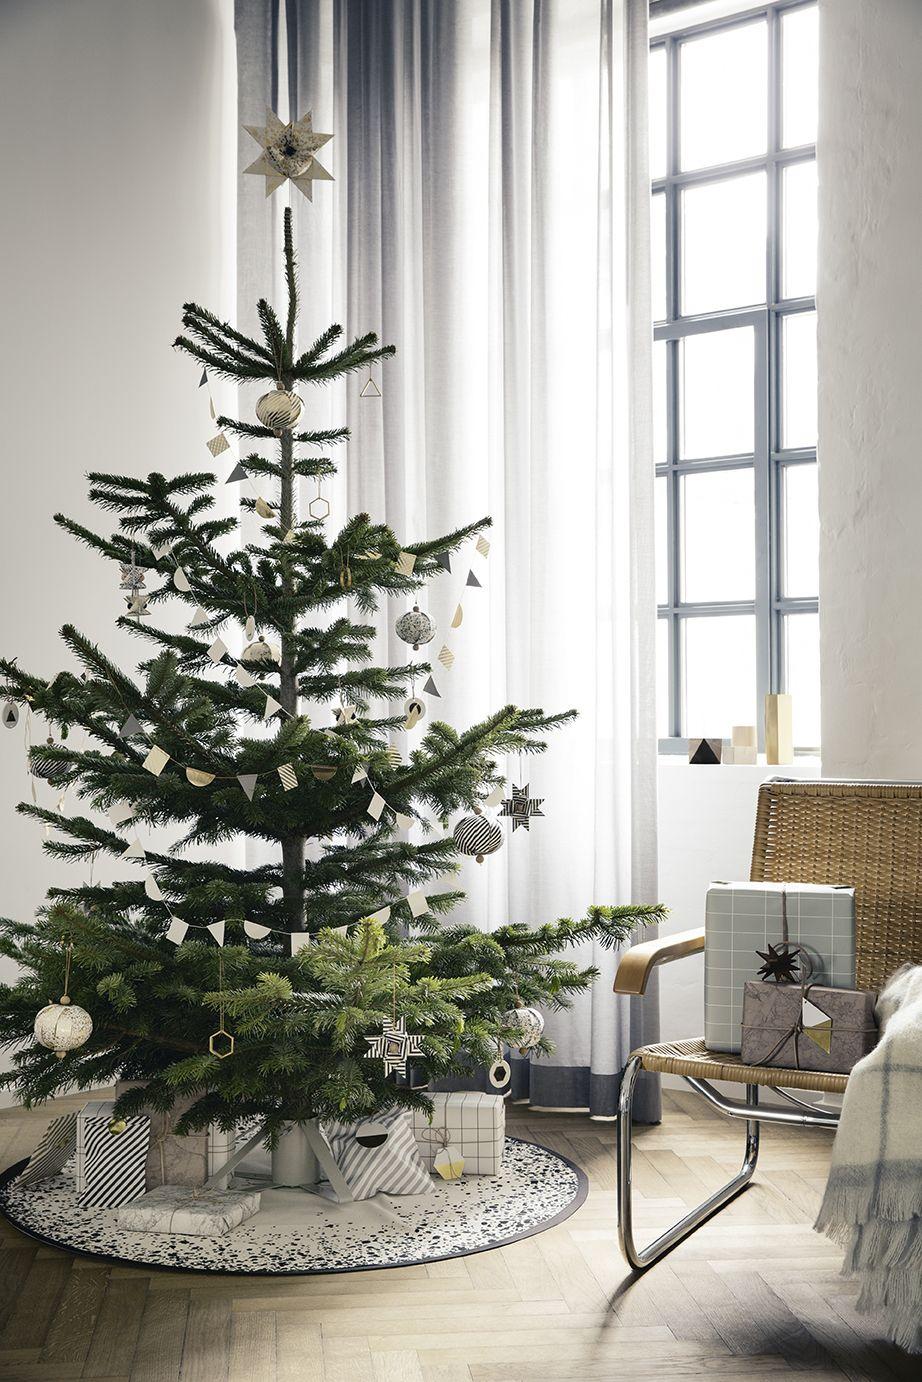 Incredibly Chic Modern Minimalist Christmas Trees Minimalist Maxima Minimalist Christmas Tree Scandinavian Christmas Decorations Scandinavian Christmas Trees